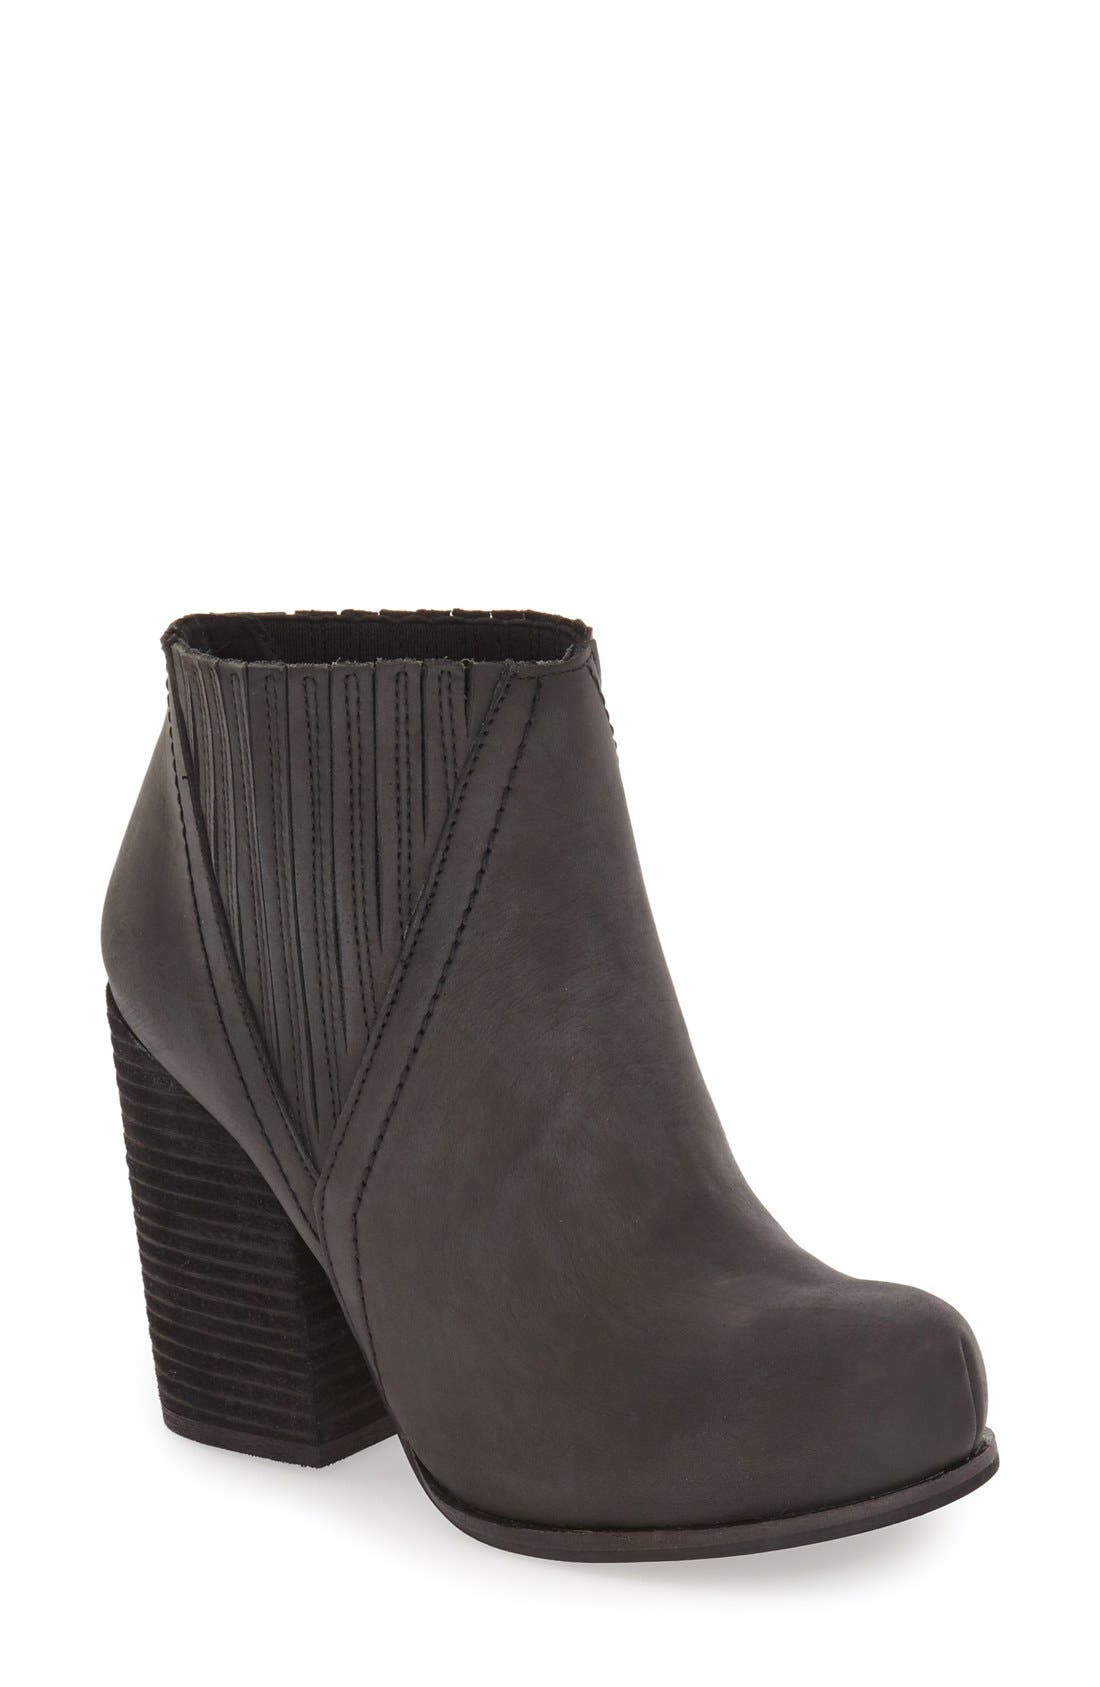 Alternate Image 1 Selected - Jeffrey Campbell 'Gershon' Block Heel Bootie (Women)